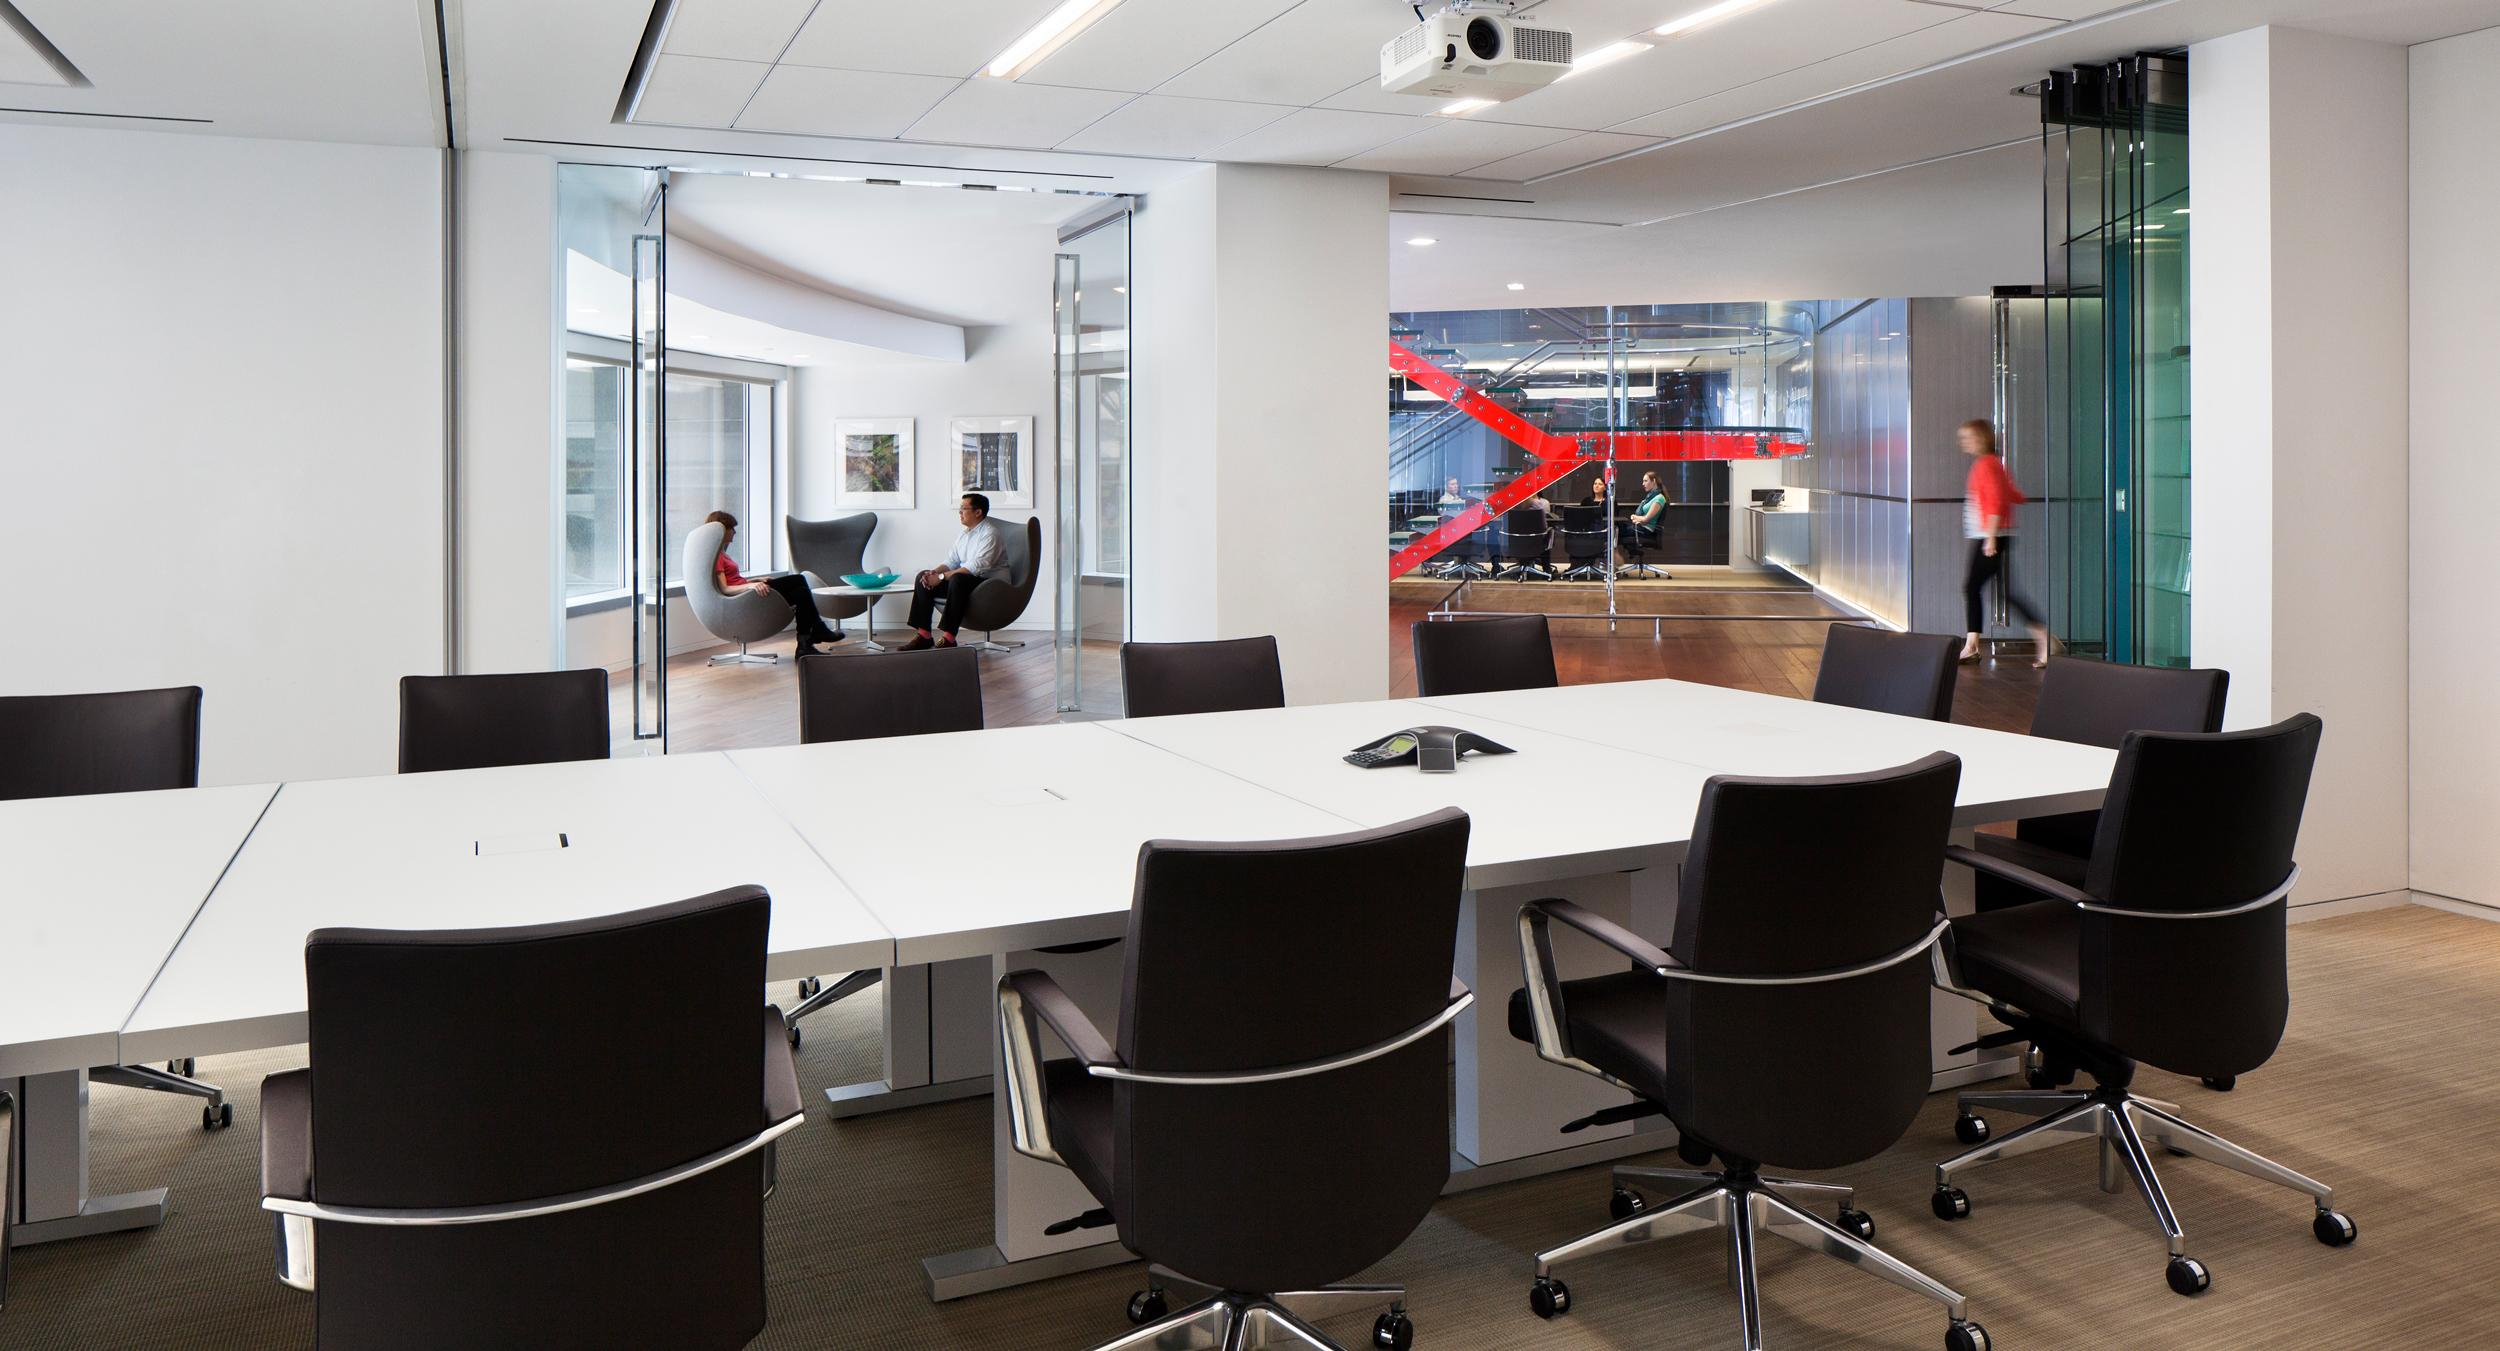 MOTUS tables in etched white glass create conference space that is beautiful and flexible.